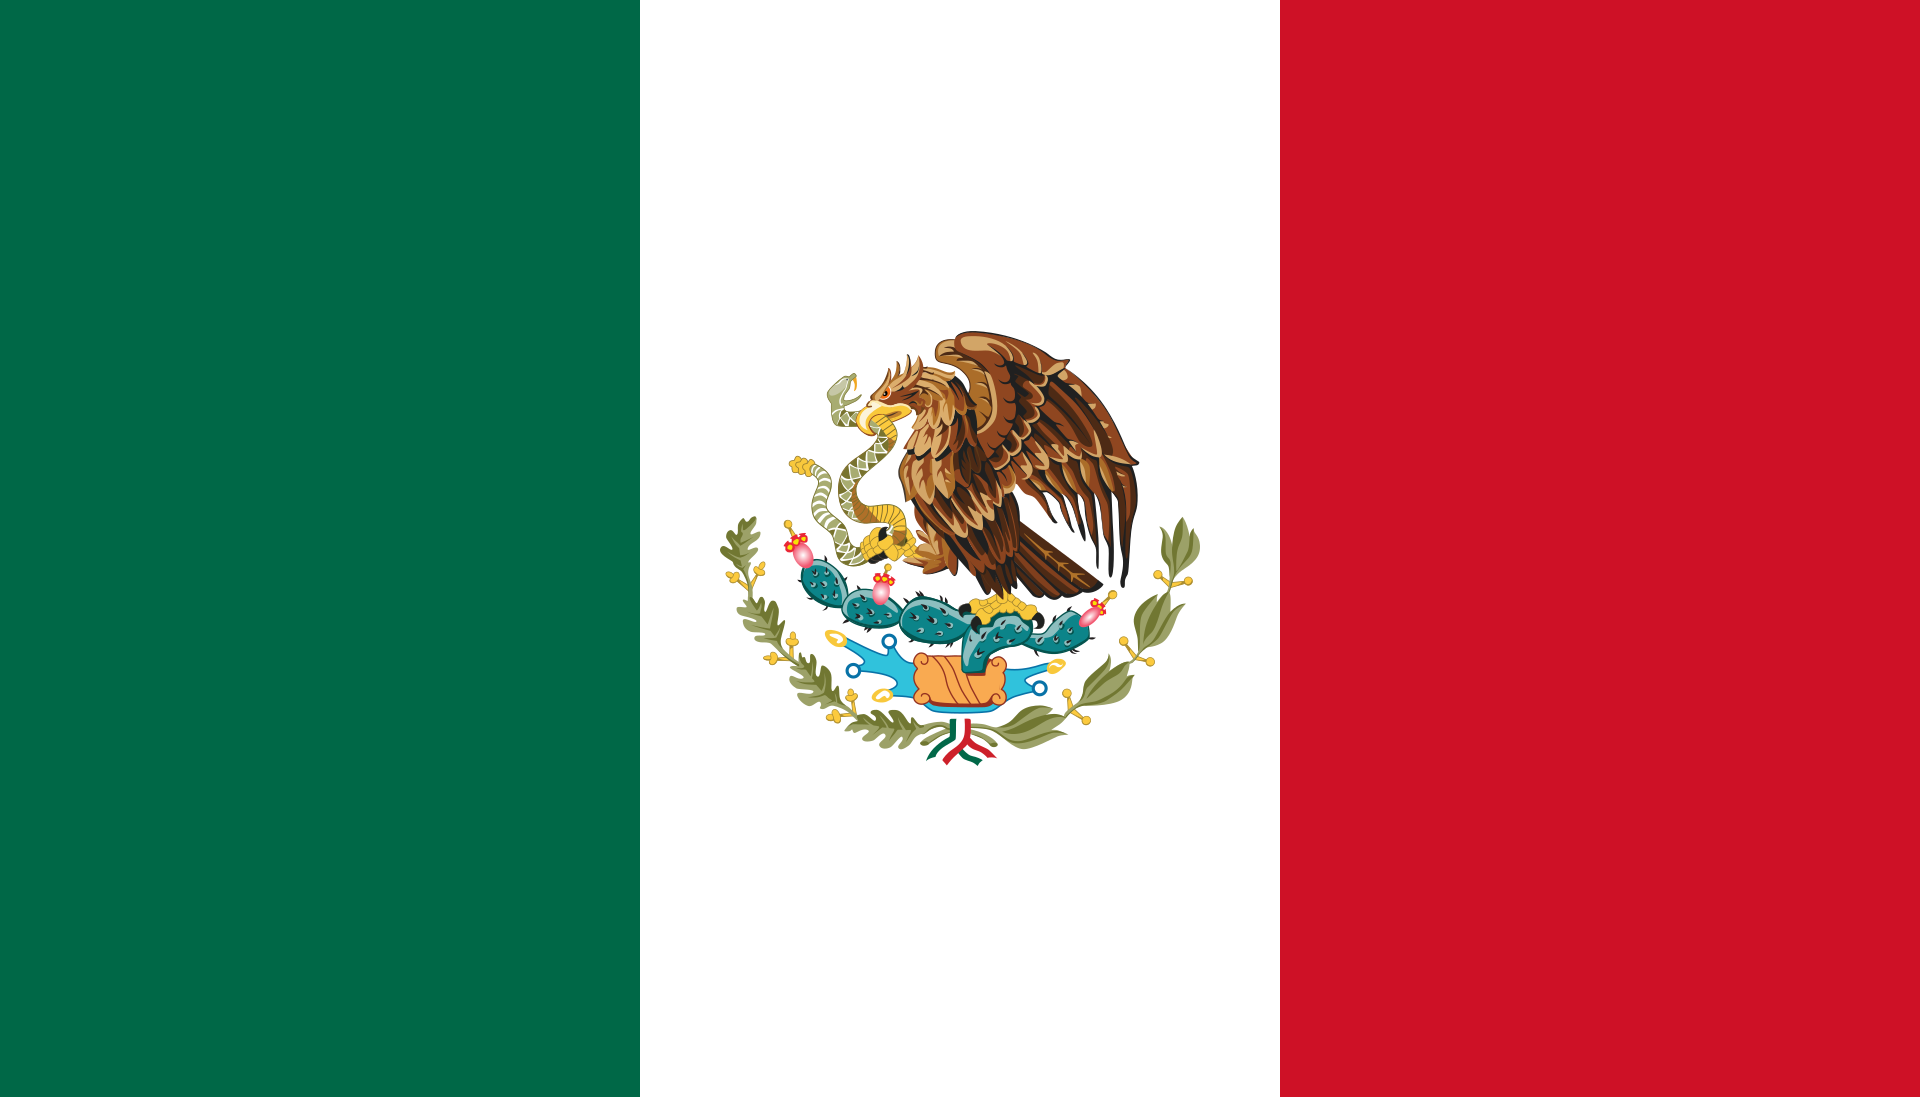 Chemical-Free Mexico Pool Dealer Flag